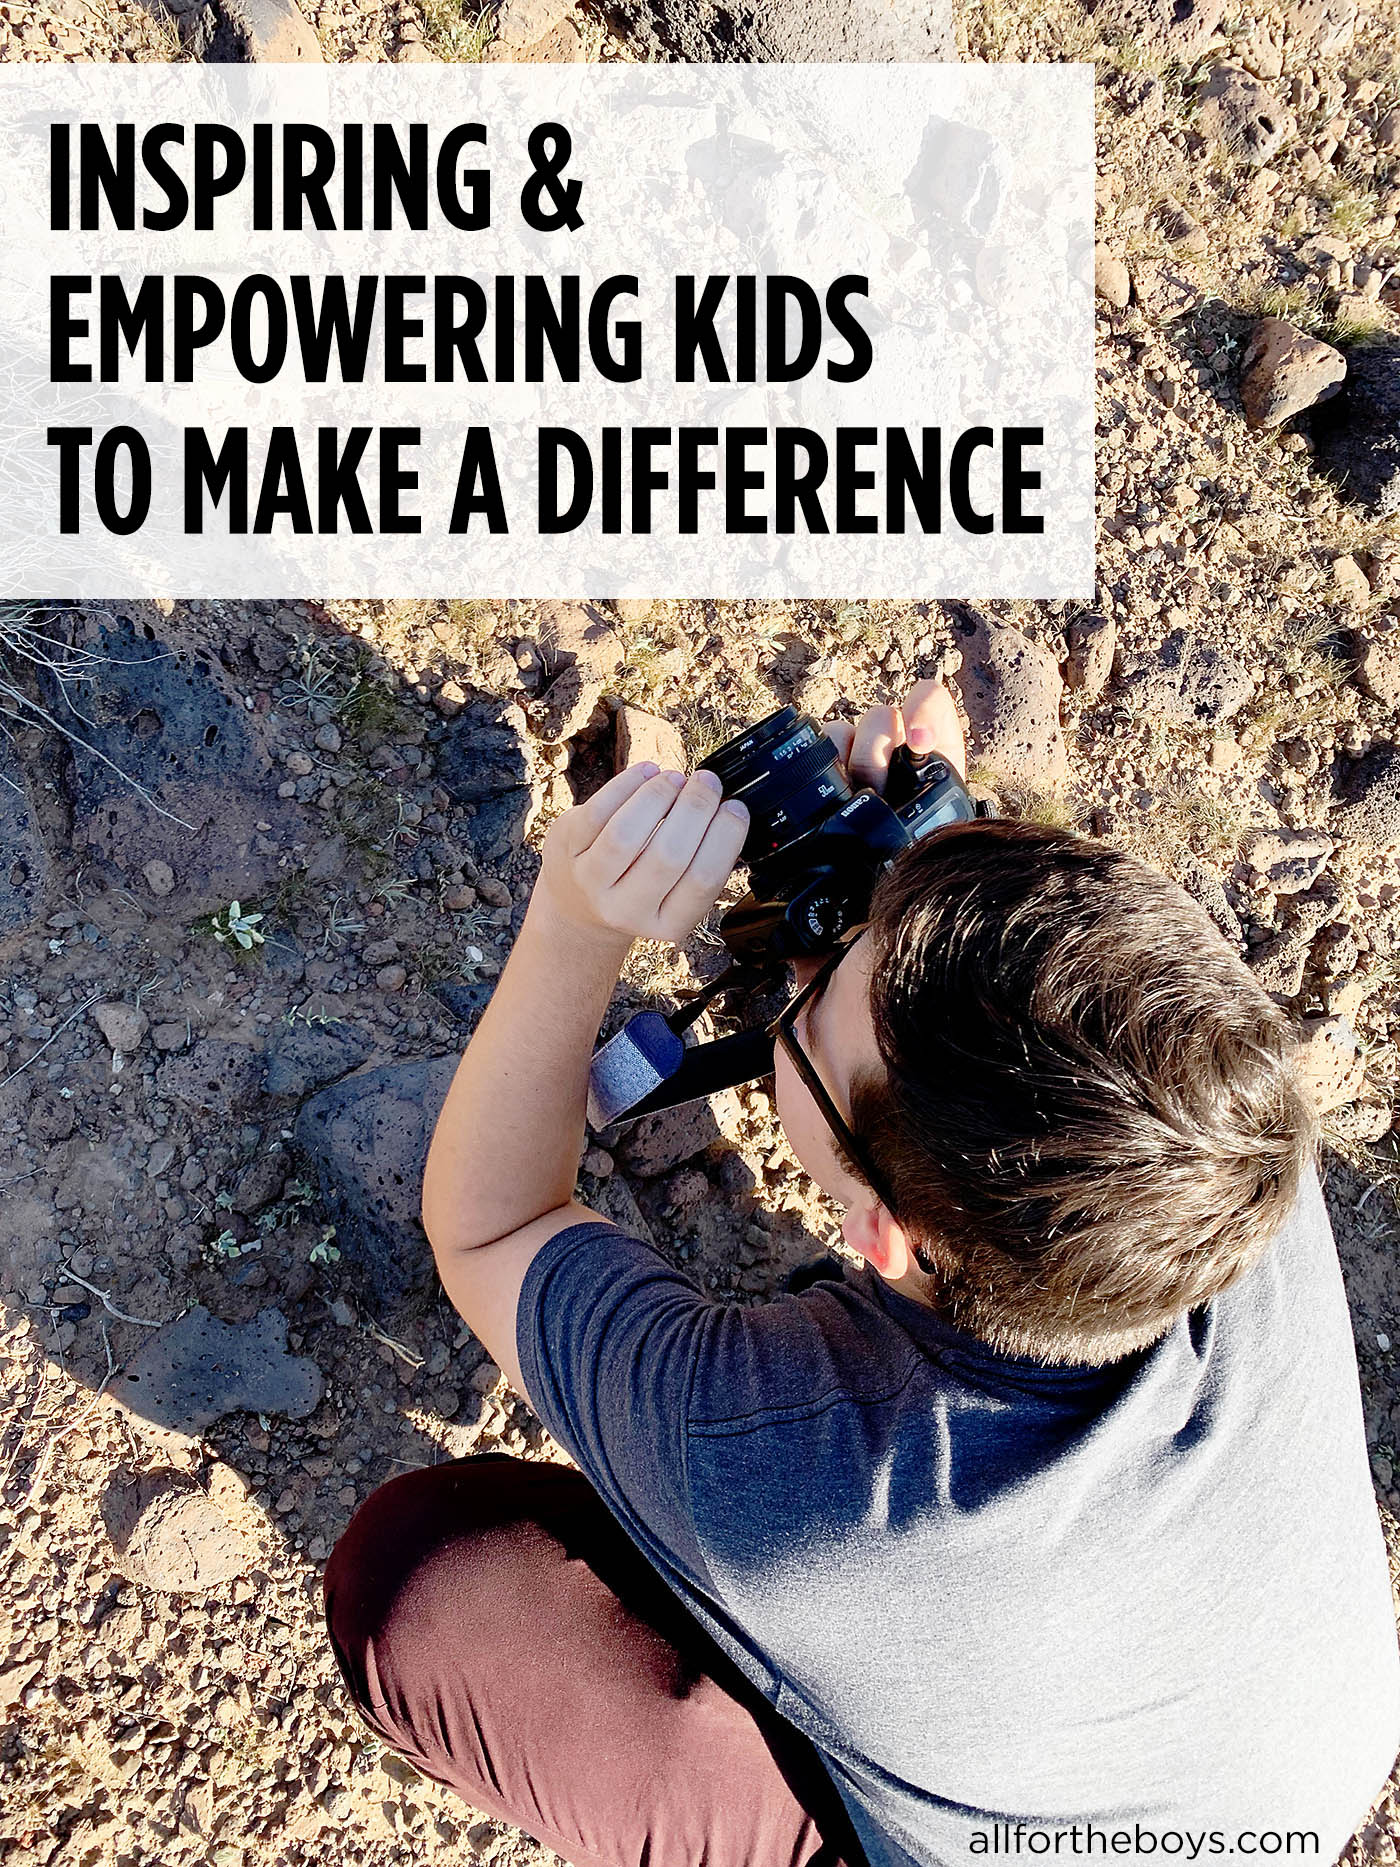 Empowering kids to make a difference